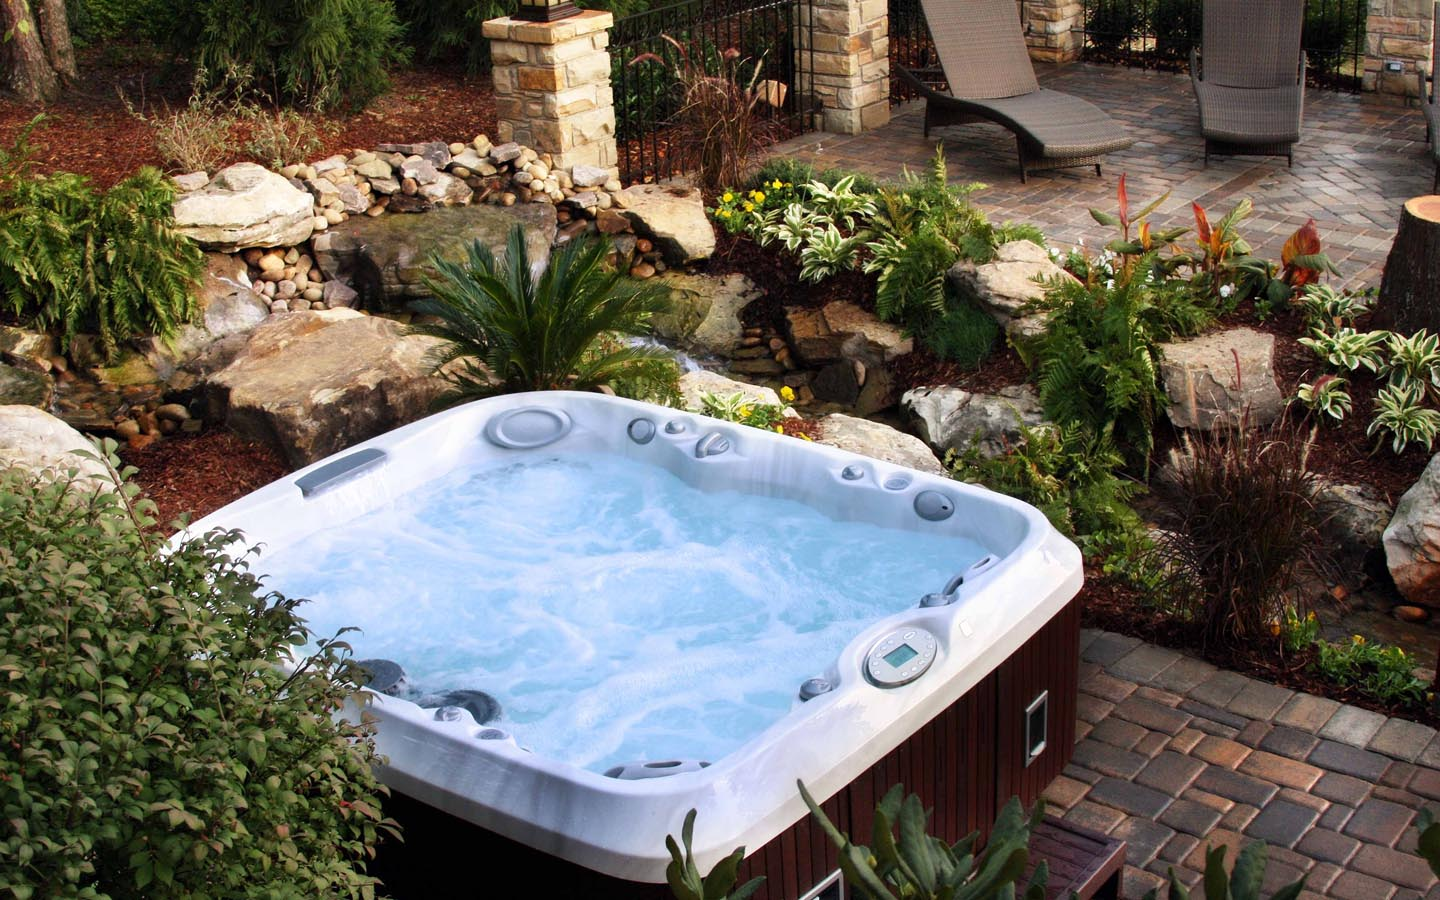 outdoor-wooden-clad-jacuzzi-upon-dark-stone-tile-floor-with-natural-greenery-surround